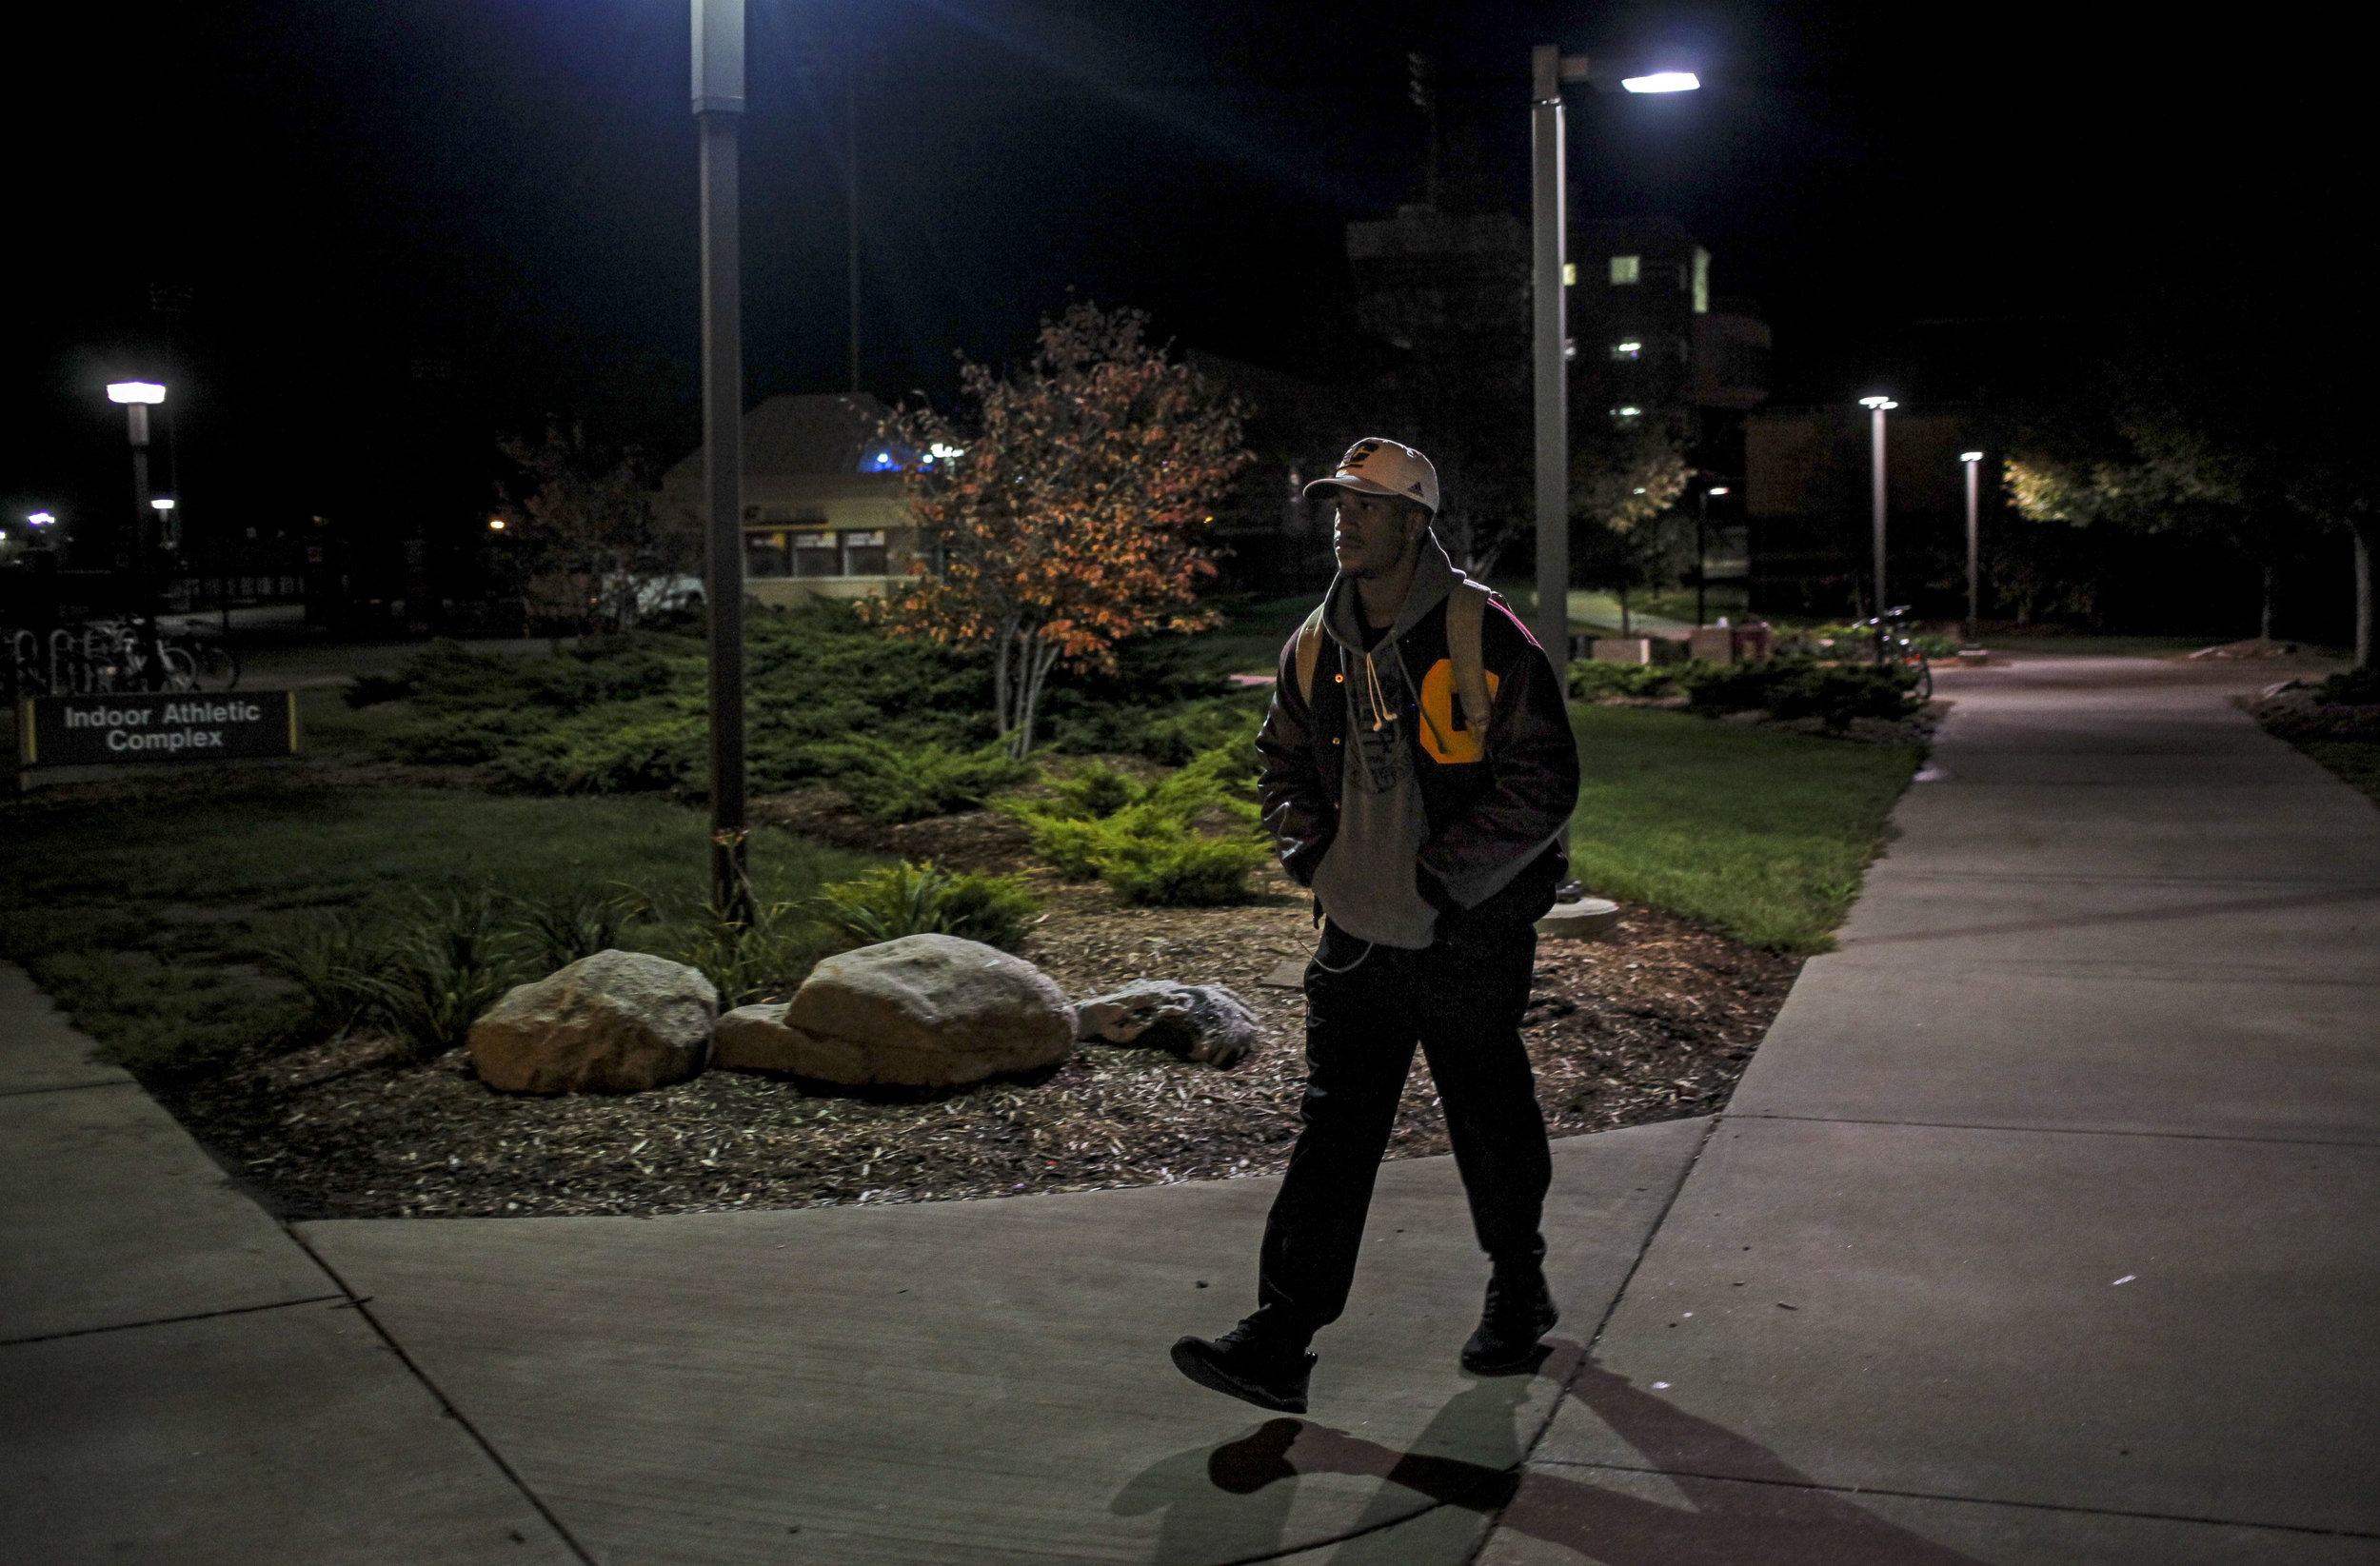 After a long day at school, Ray Golden, Jr., leaves campus. With days that start with early morning practices and a day full of classes, Ray gets to campus when it's dark and often doesn't leave until after dark.